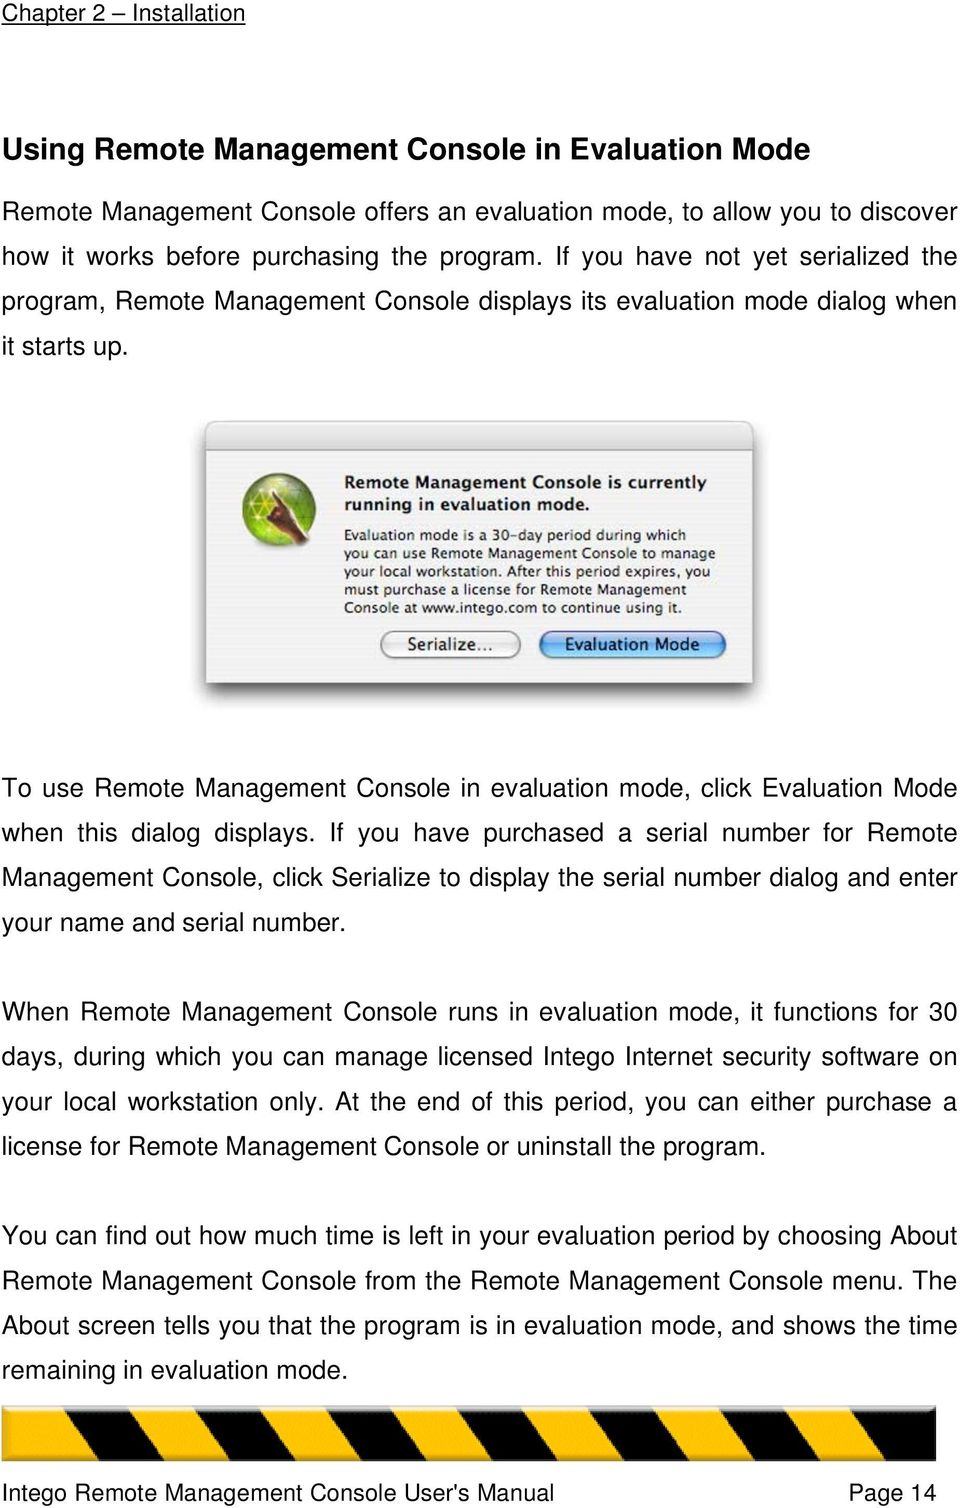 To use Remote Management Console in evaluation mode, click Evaluation Mode when this dialog displays.